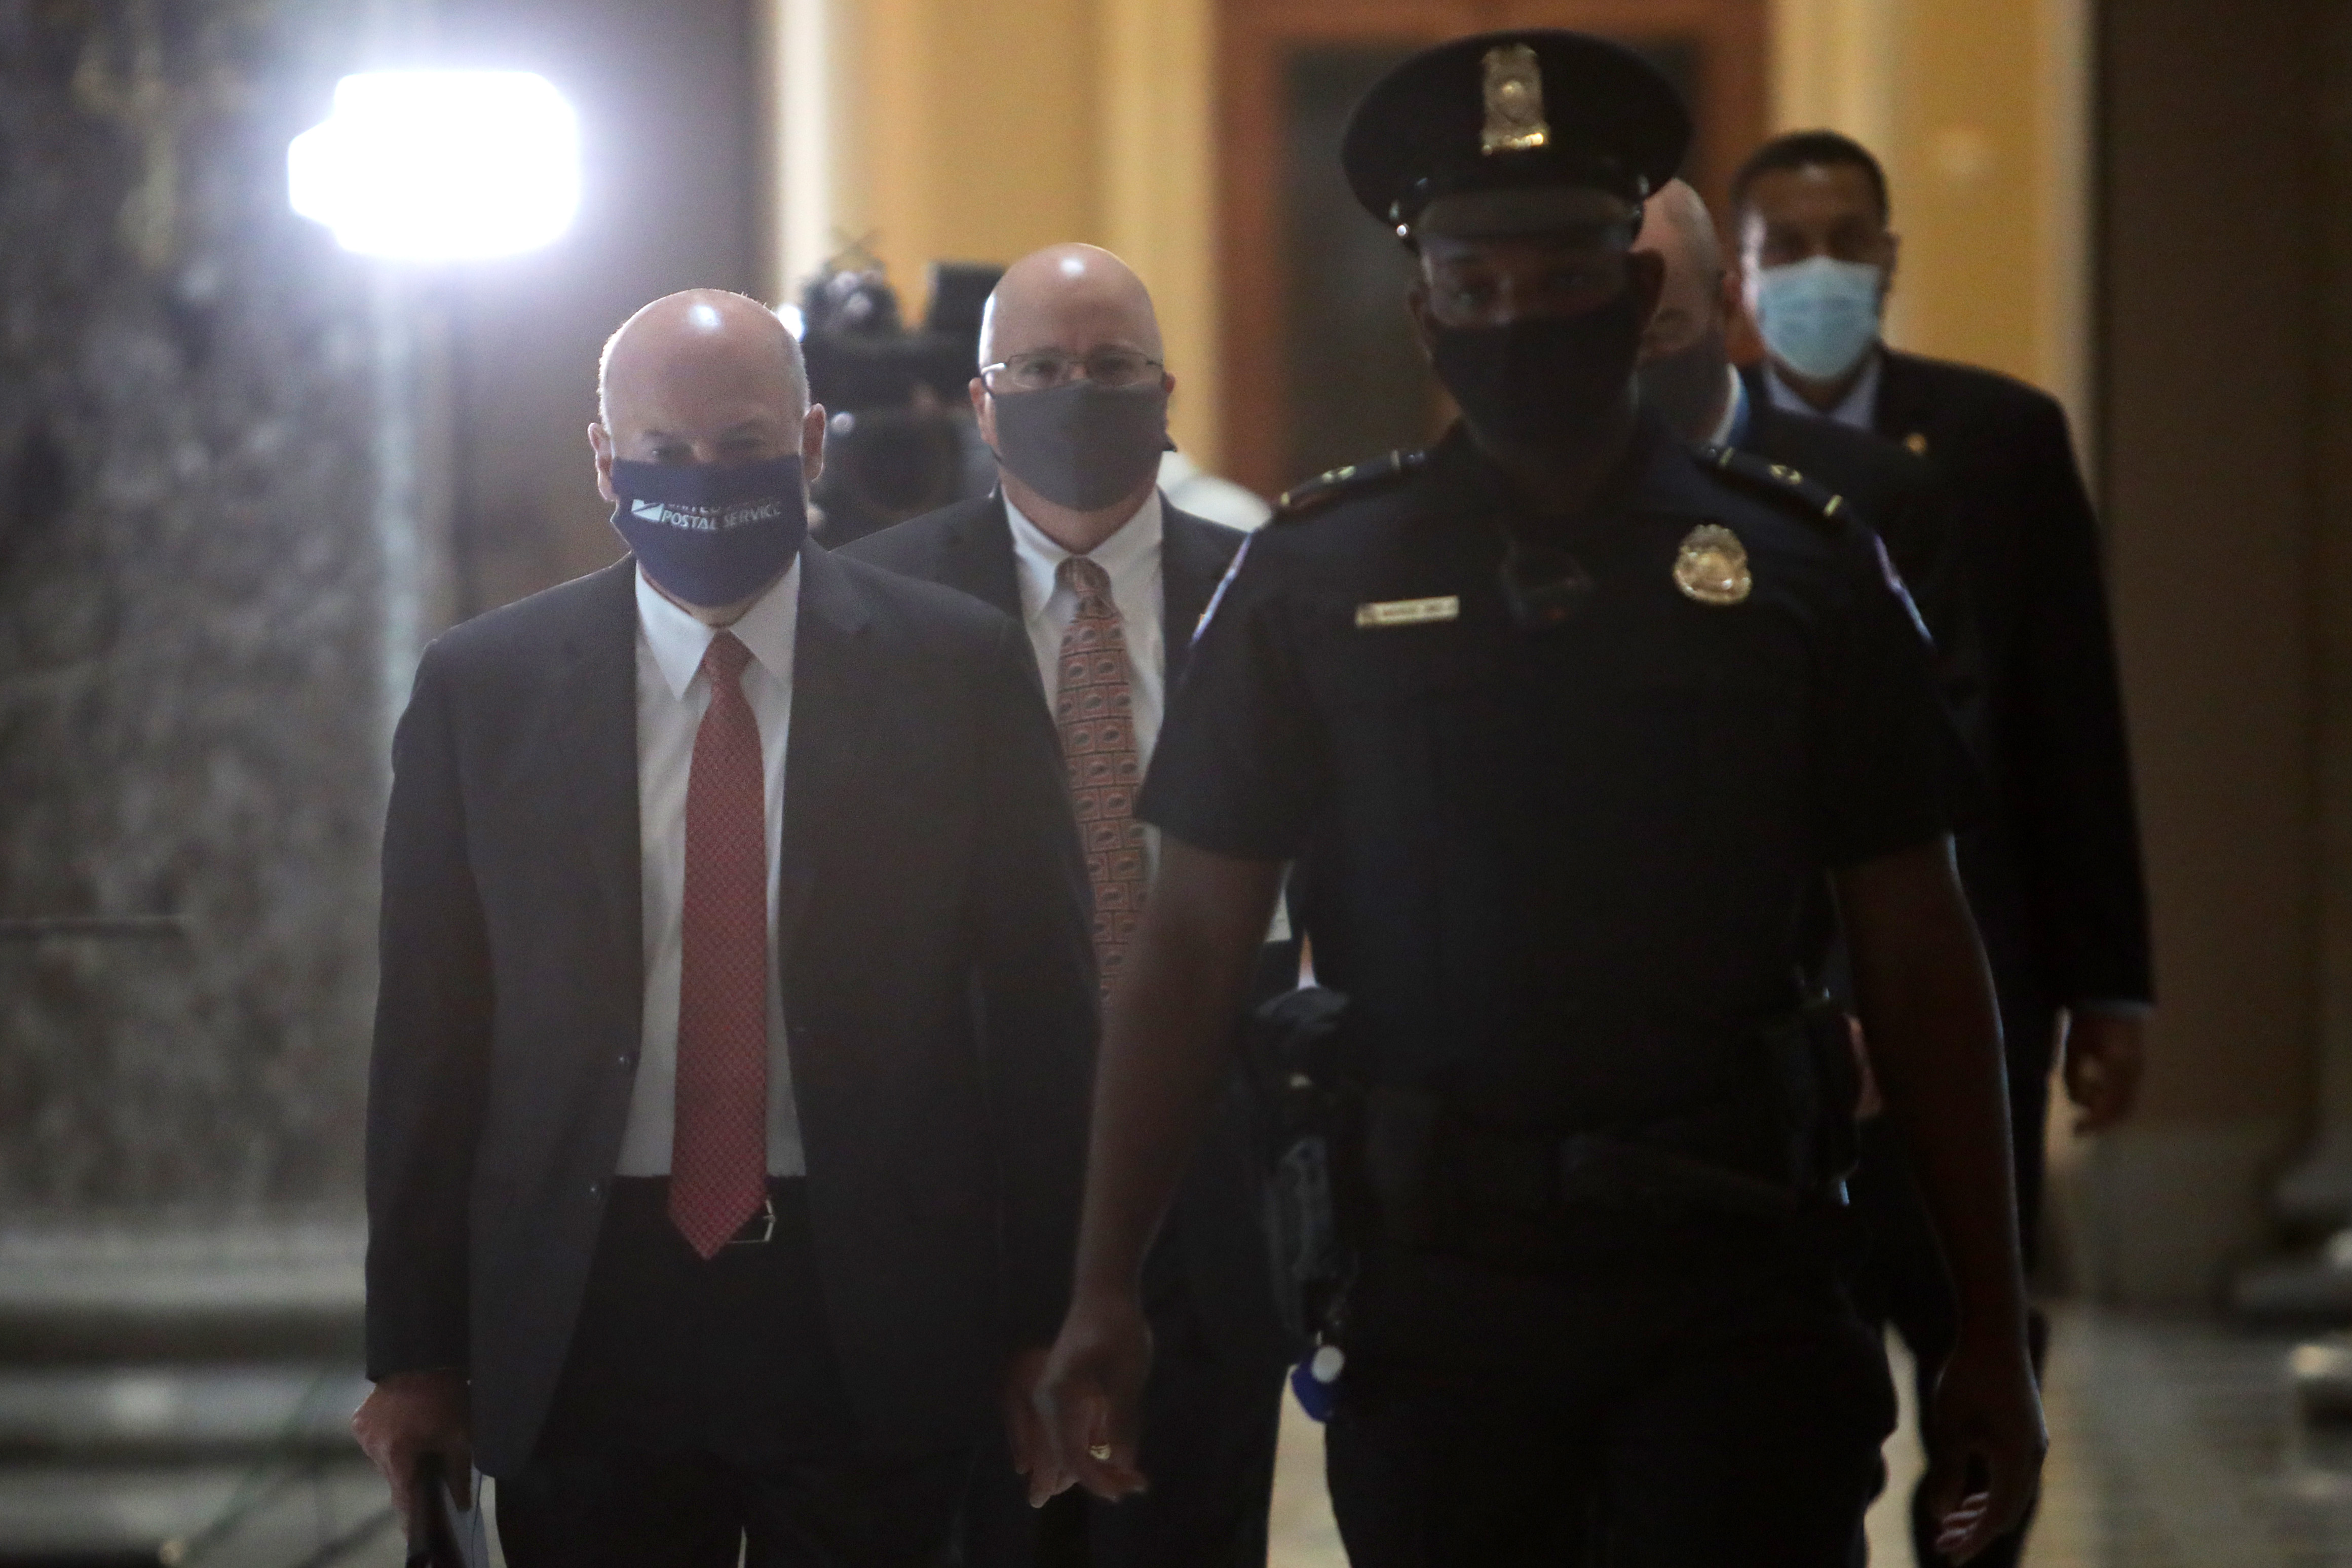 WASHINGTON, DC - AUGUST 05: U.S. Postmaster General Louis Dejoy (L) arrives at a meeting at the office of Speaker of the House Rep. Nancy Pelosi (D-CA) at the U.S. Capitol August 5, 2020 in Washington, DC. Negotiations between Treasury Secretary Steven Mnuchin, Speaker of the House Rep. Nancy Pelosi, Senate Minority Leader Sen. Chuck Schumer and White House Chief of Staff Mark Meadows for an agreement on how to move forward on a new relief package to help people and businesses weather the COVID-19 pandemic continue today at the U.S. Capitol. (Photo by Alex Wong/Getty Images)